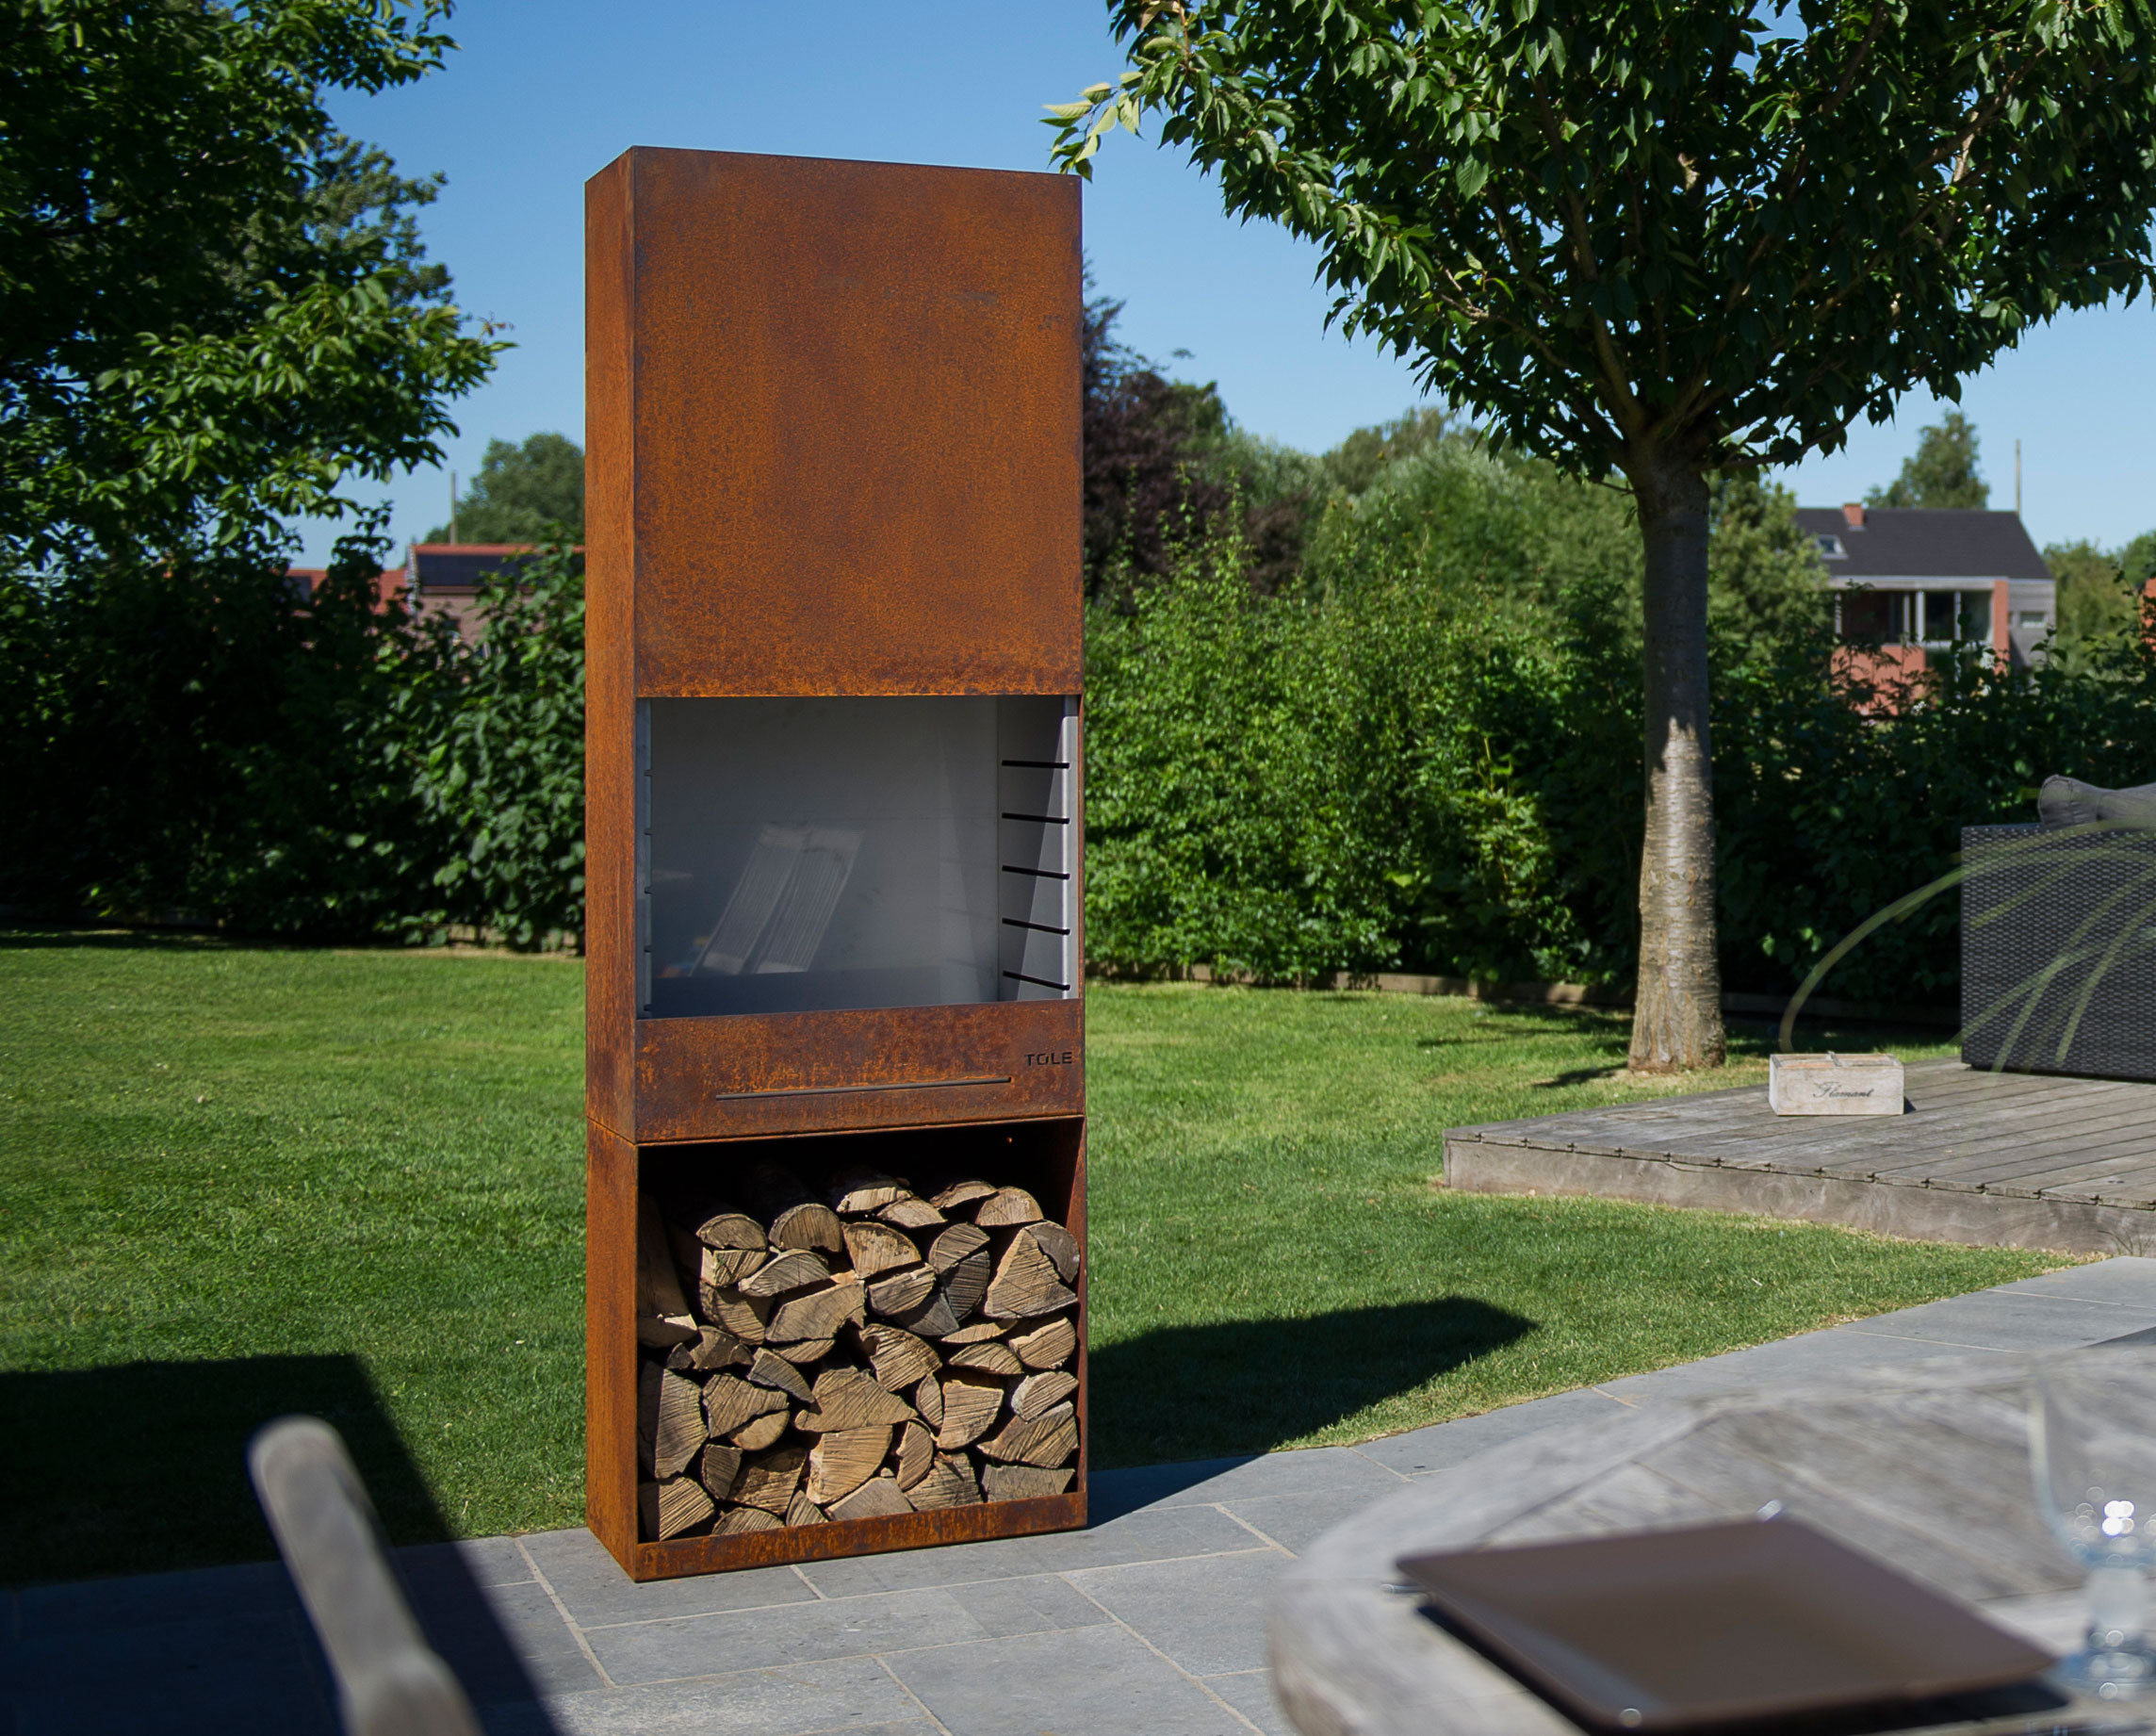 der tole gartenfeuer grill kamin k60 ingarden garten haus lifestyle. Black Bedroom Furniture Sets. Home Design Ideas